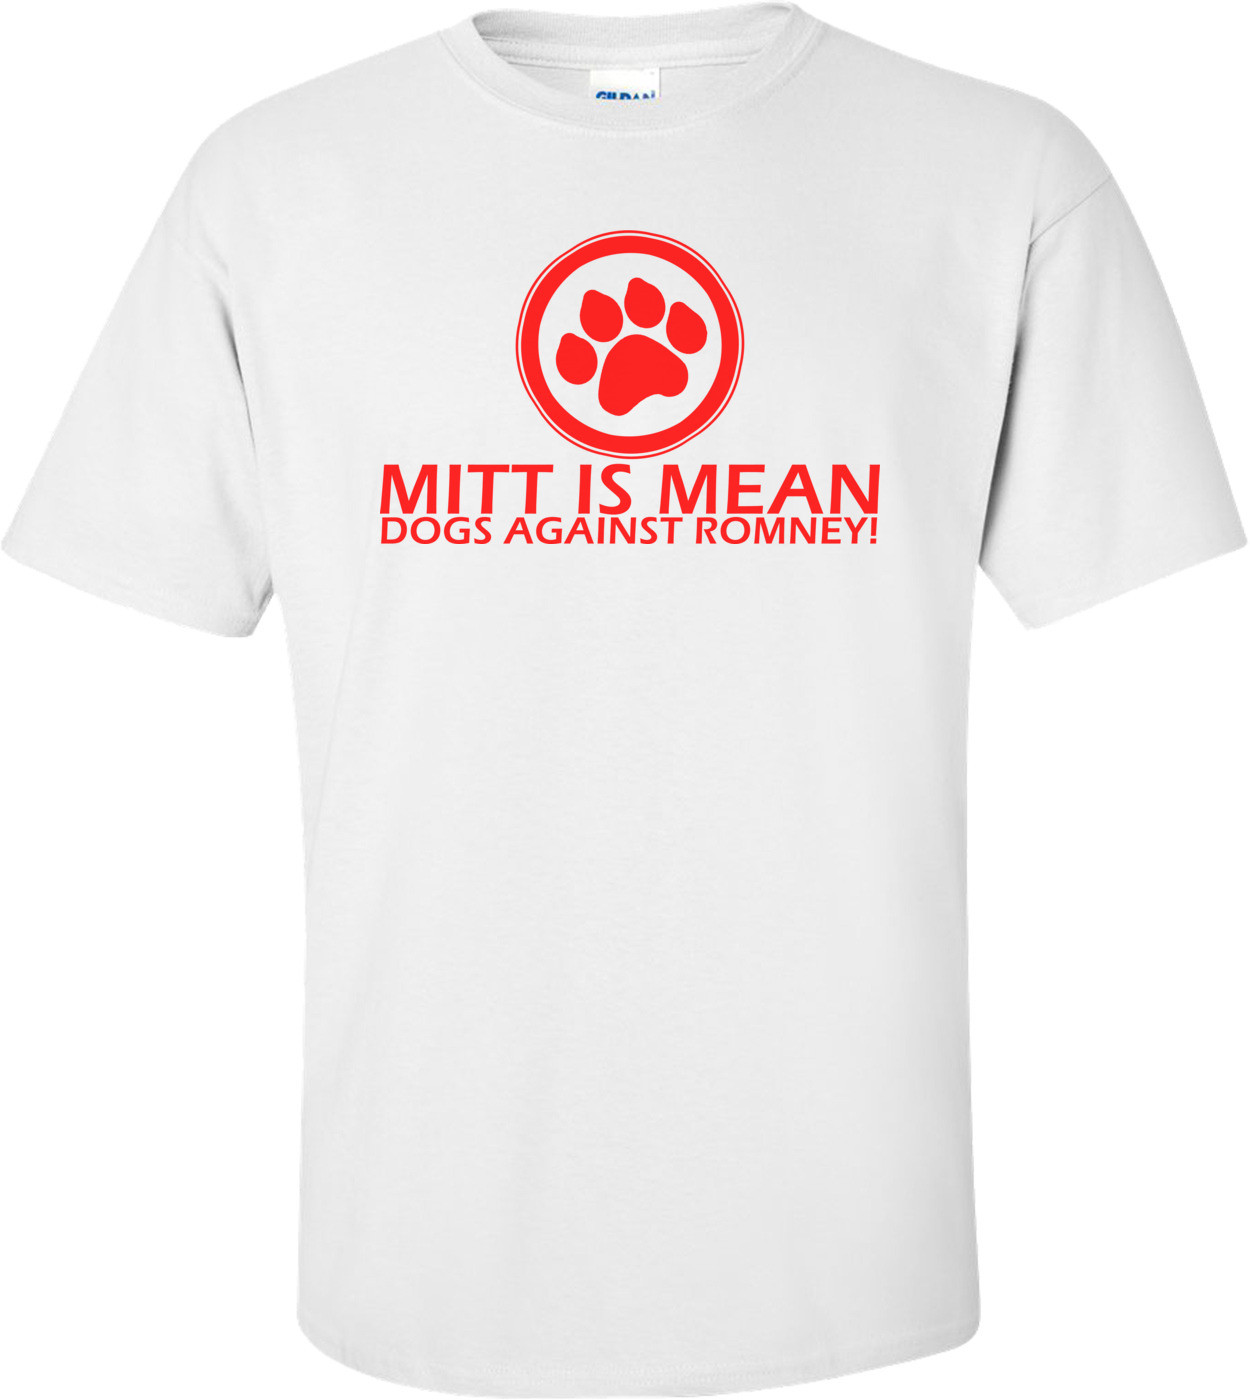 Mitt Is Mean Dogs Against Romney - Anti Mitt Romney Shirt